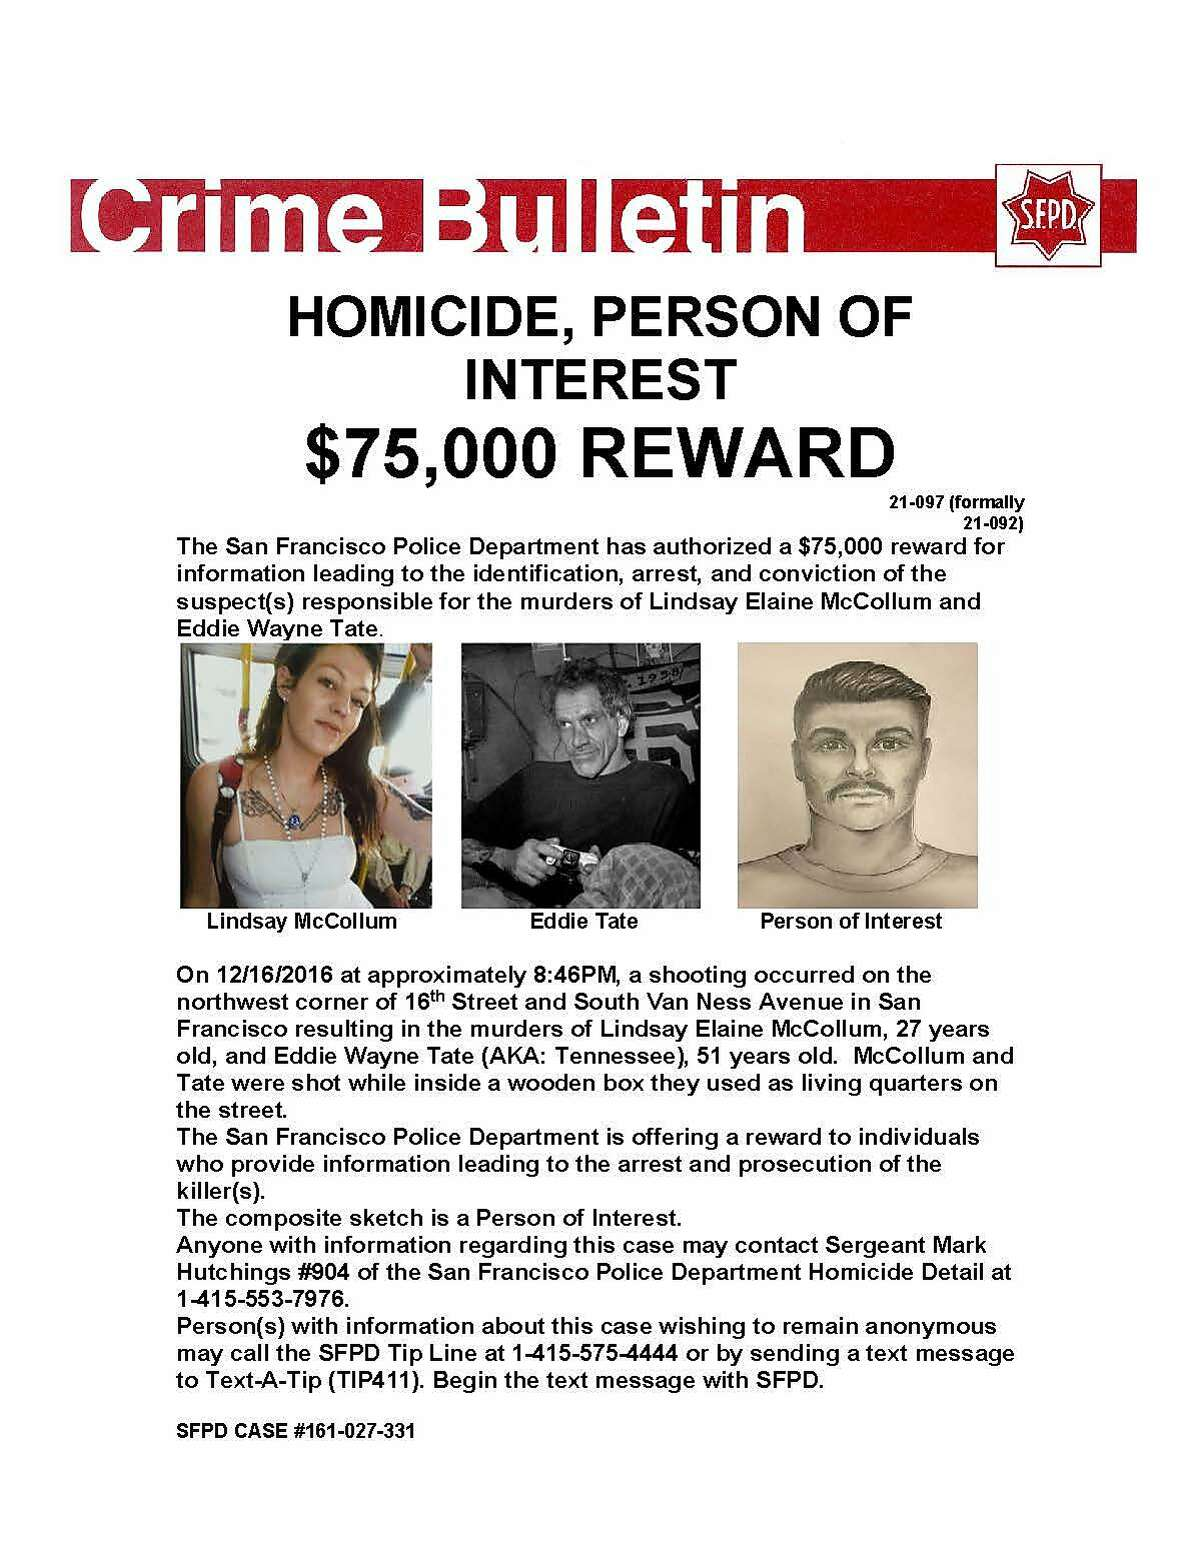 """A poster advertises the police reward for the killers of Lindsay McCollum and Eddie """"Tennessee"""" Tate, killed in a 2016 in San Francisco's Mission District."""